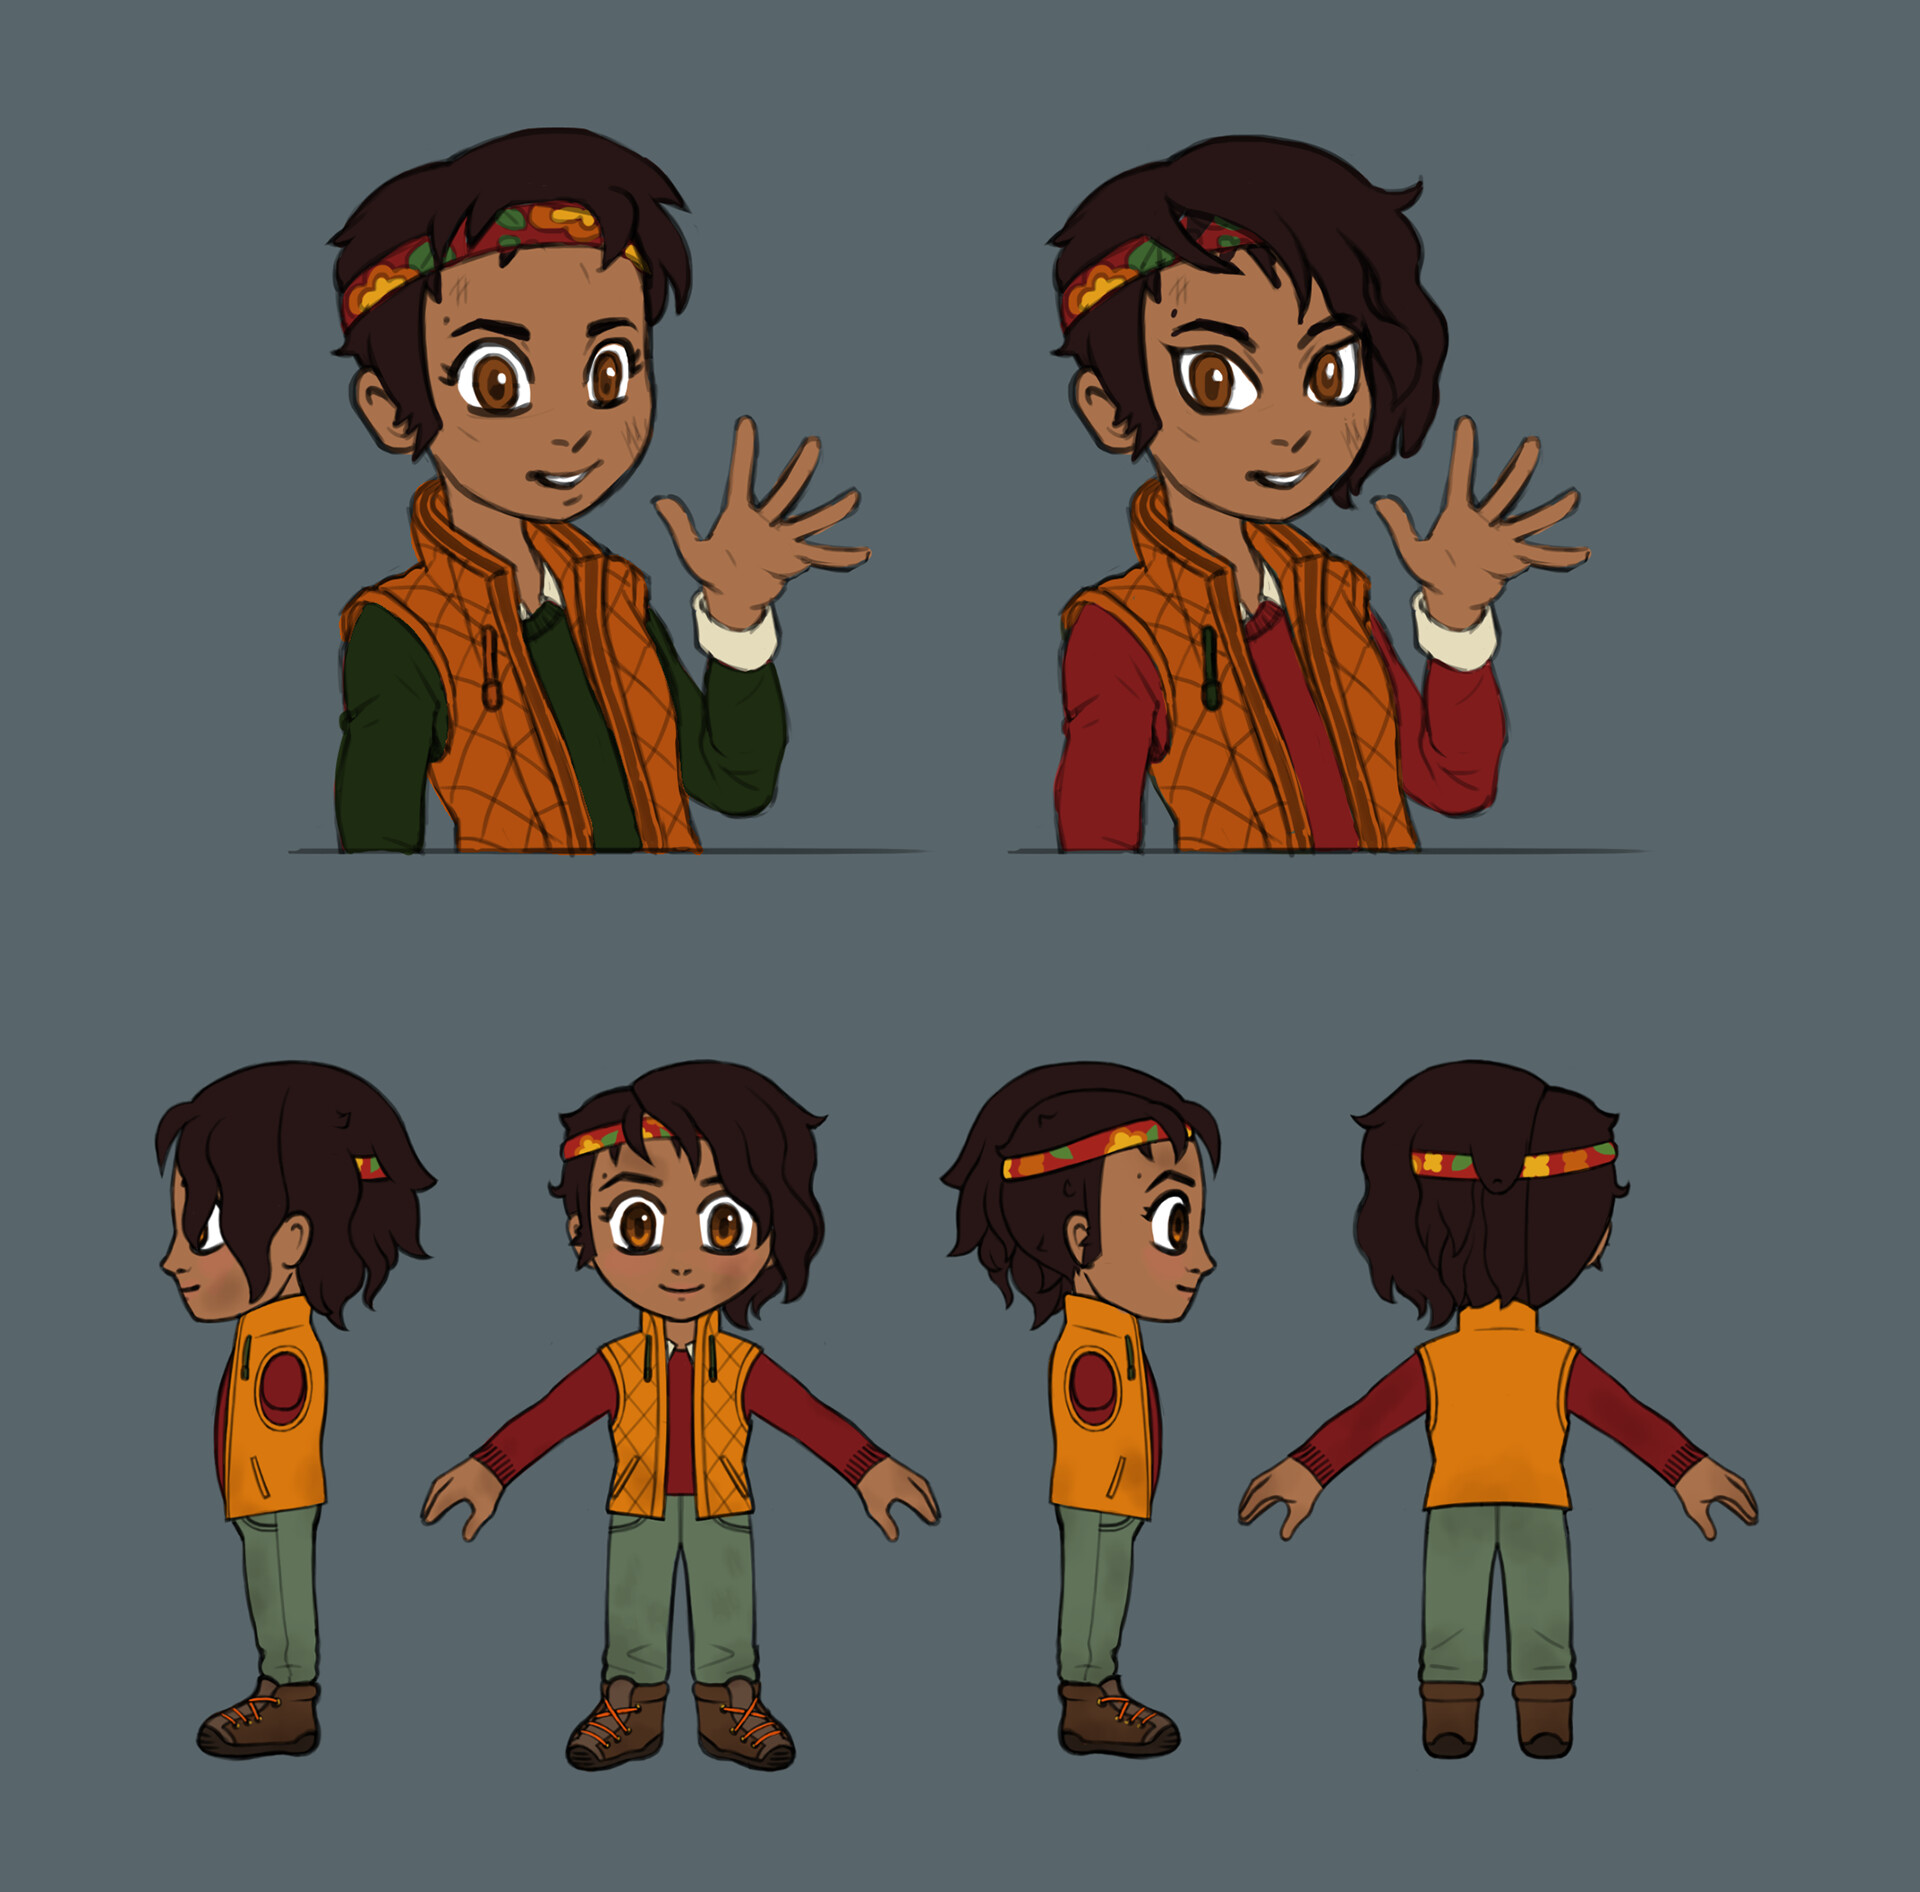 Player's friend - preliminary concepts and final turnaround